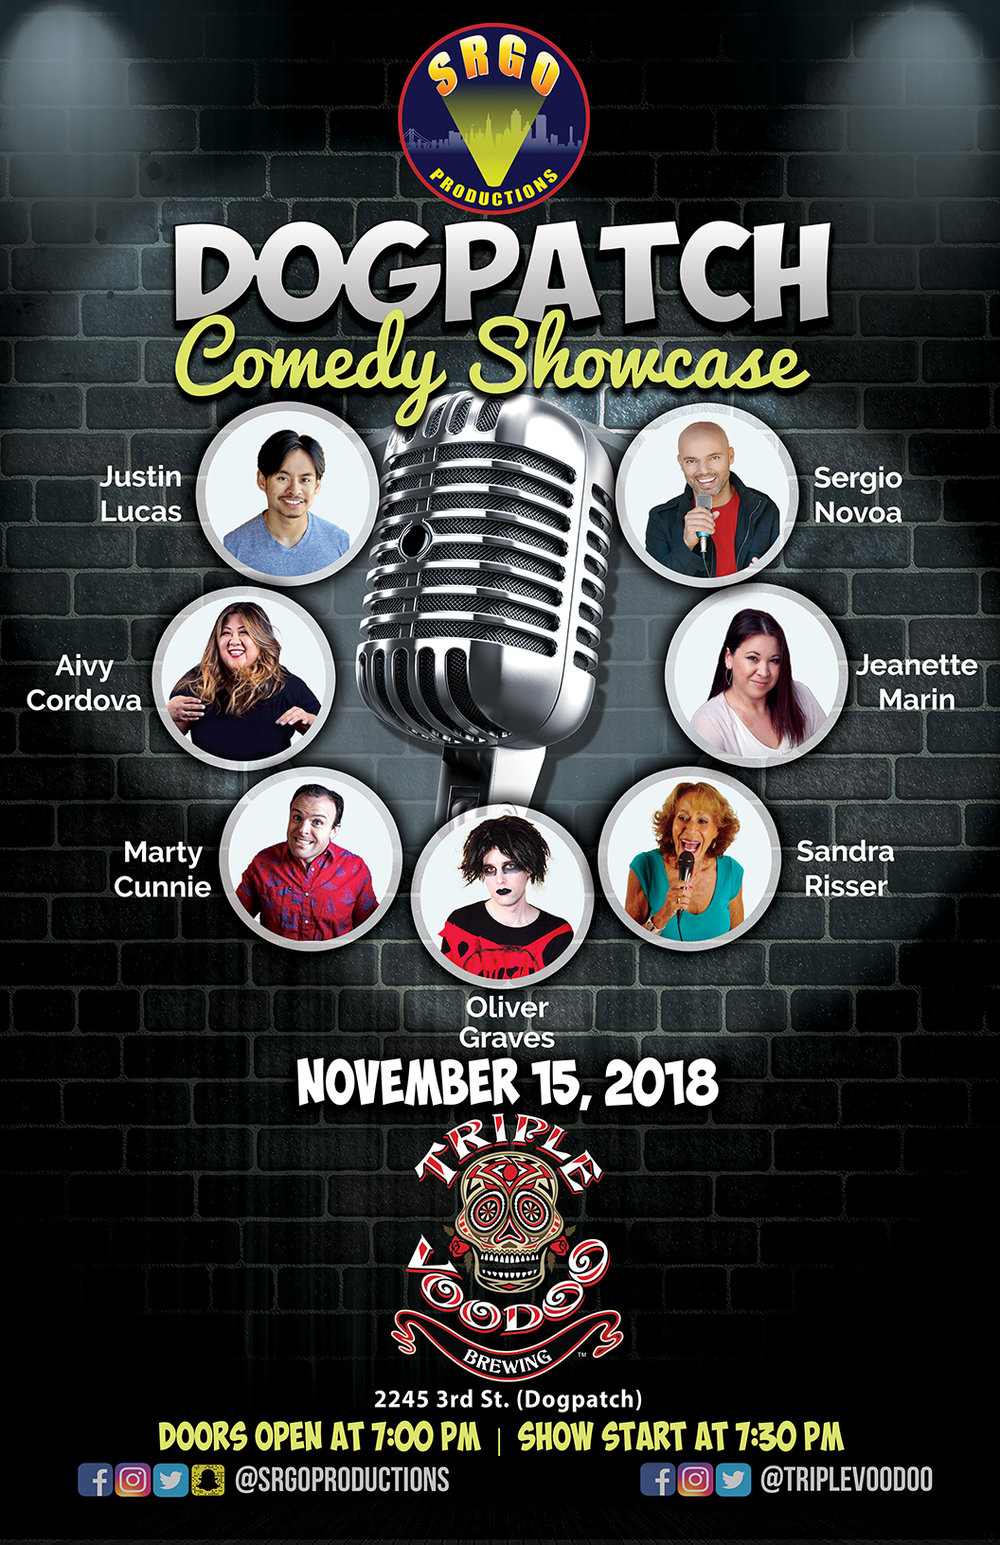 11.15.18 dogpatch comedy showcase.jpg